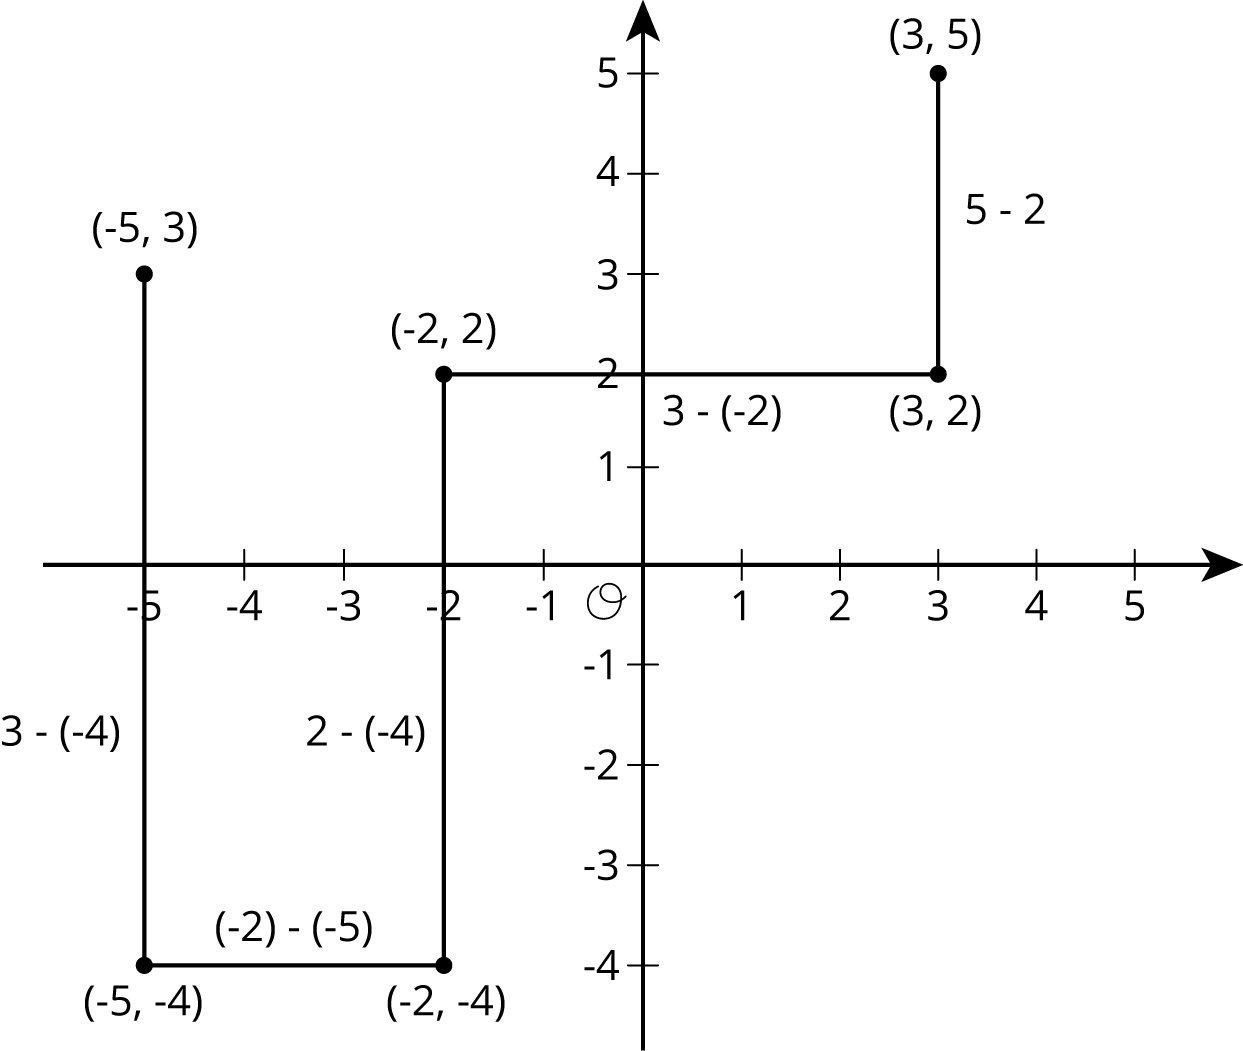 """Five line segments on a coordinate plane with the origin labeled """"O"""". The numbers negative 5 through 5, are indicated on the horizontal axis and the numbers negative 4 through 5 are indicated on the vertical axis. Each line segment is either vertical or horizontal.  The first  line segment is vertical that begins at the point negative 5 comma 3 and ends at the point negative 5 comma negative 4; the line segment is labeled with the expression 3 minus negative 4. The second line segment is horizontal and begins at the point negative 5 comma negative 4 and ends at the point negative 2 comma negative 4; the line segment is labeled with the expression negative 2 minus negative 5. The third  line segment is vertical and begins at the point negative 2 comma negative 4 and ends at the point negative 2 comma 2; the line segment is labeled with the expression 2 minus negative 4. The fourth line segment is horizontal and begins at the point negative 2 comma 2 and ends at the point three comma 2; the line segment is labeled  with the expression 3 minus negative 2. The fifth line segment is vertical and begins at the point 3 comma 2 and ends at the point 3 comma five; the line segment is labeled with the expression 5 minus 2."""